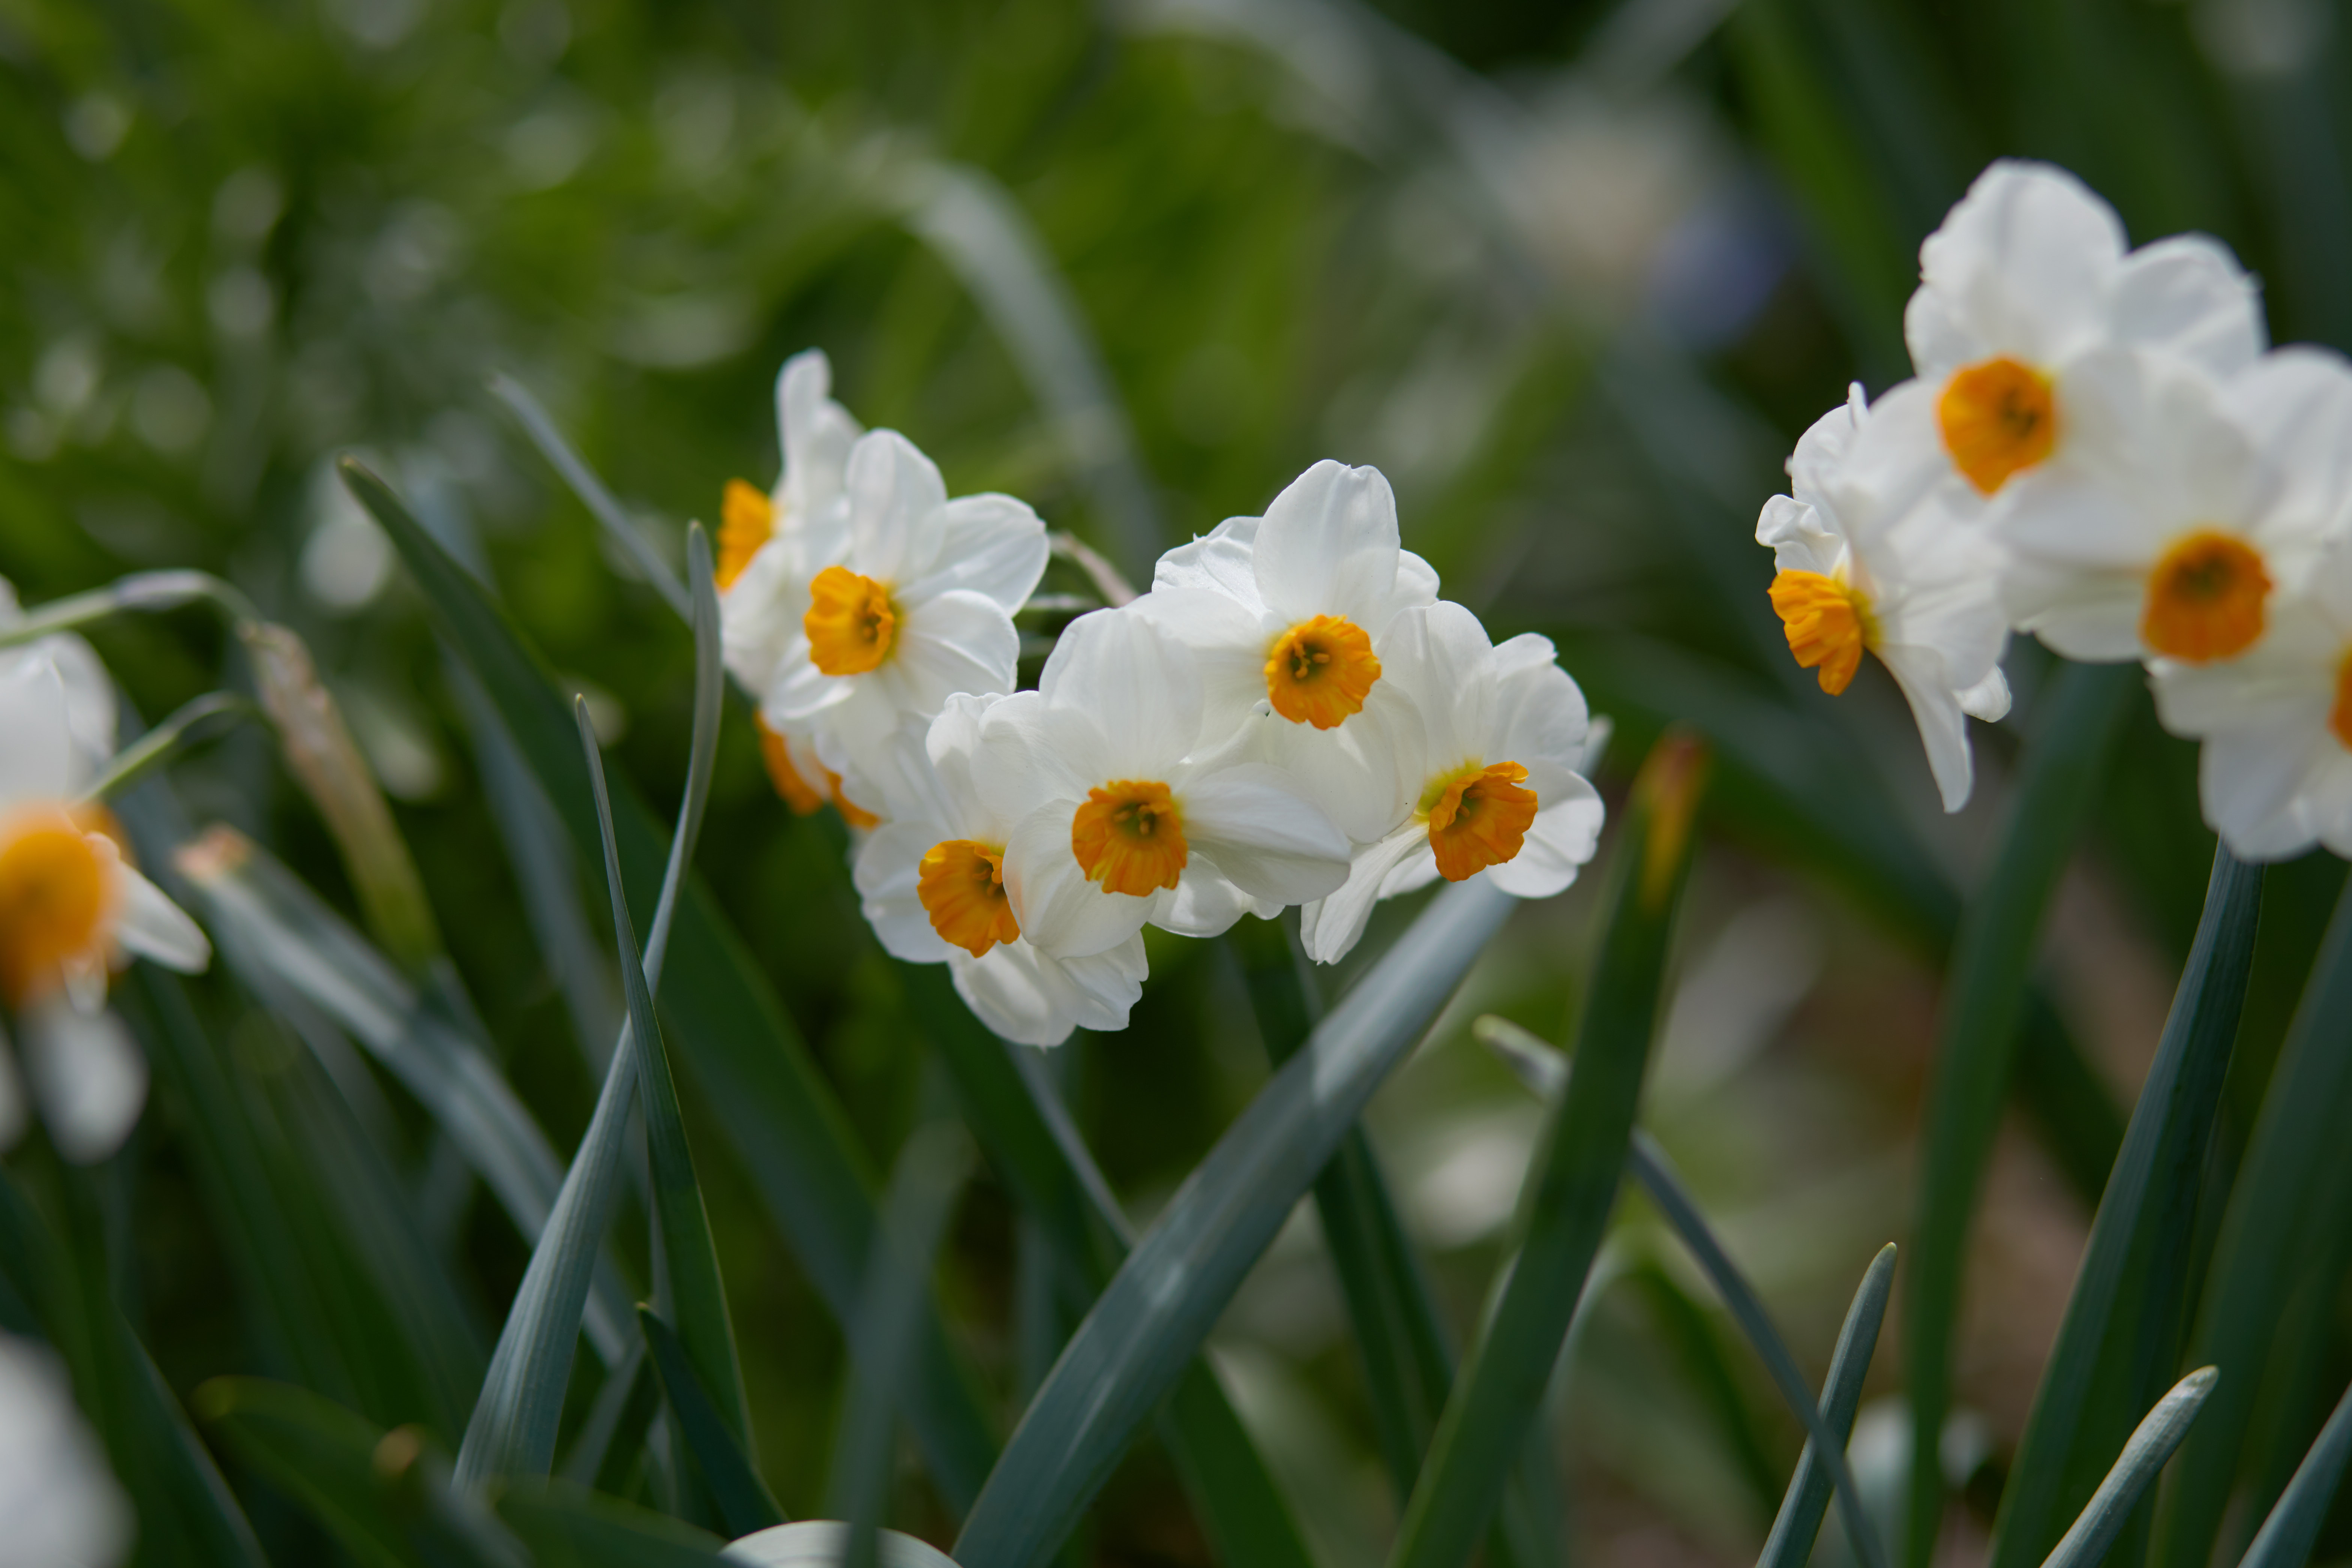 Small narcissus in bloom.